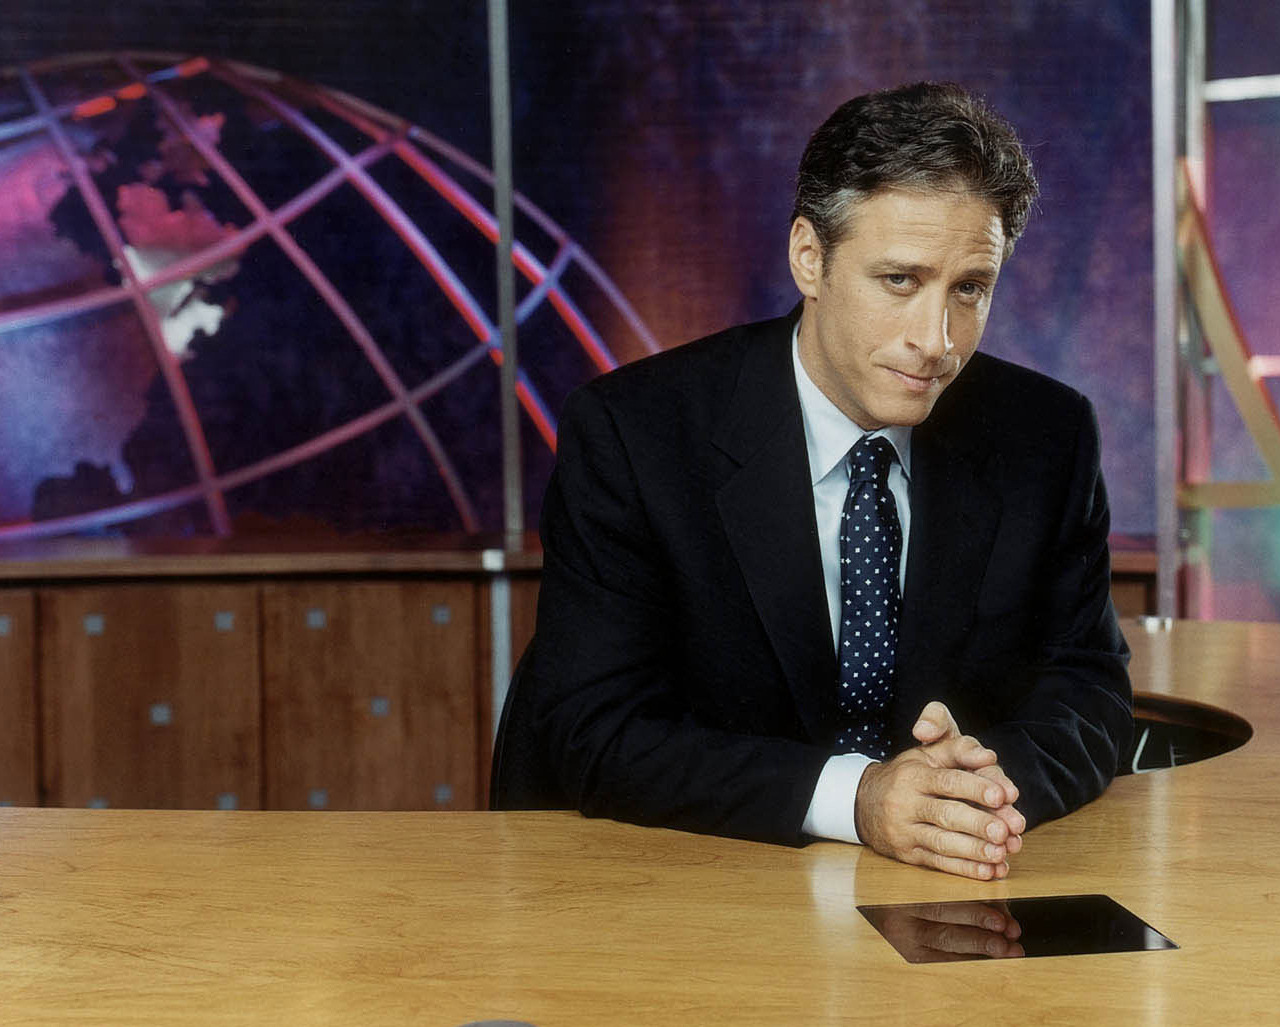 Jon Stewart Returns to Work as Host on The Daily Show After Labor Day